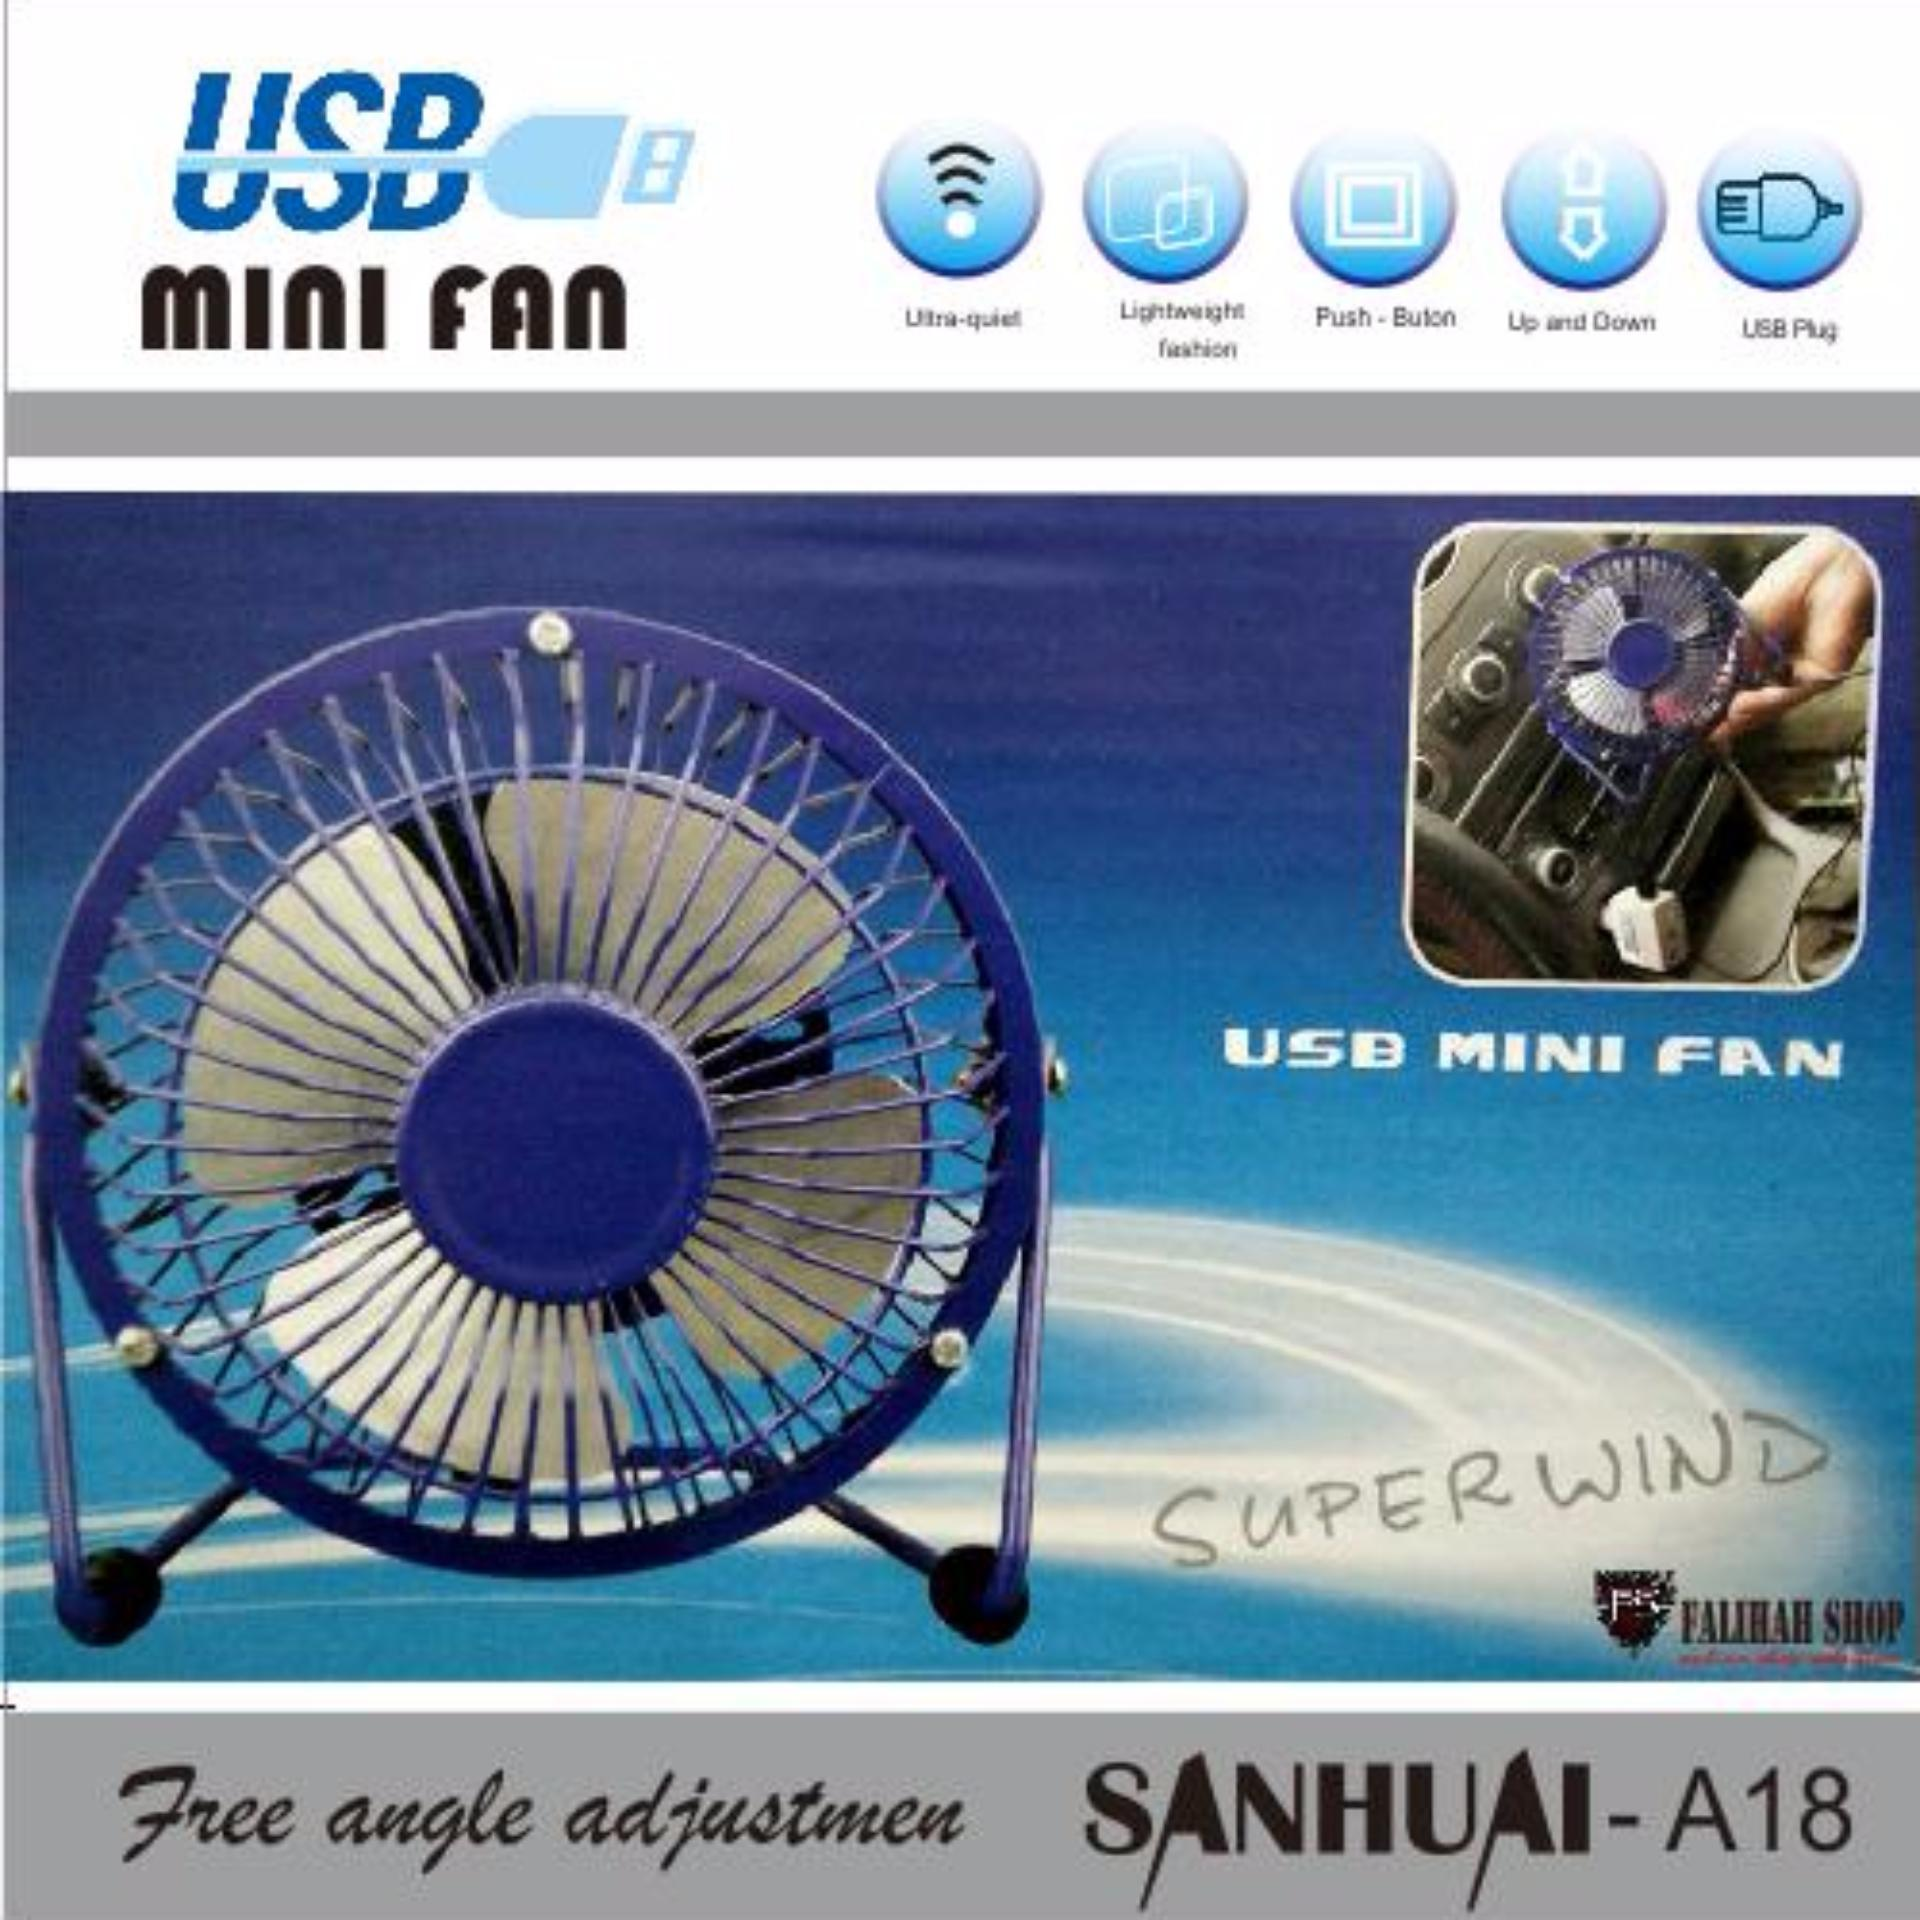 Usb Mini Fan Kipas Angin Kecil Murah Fan4 Handy Pitaldo